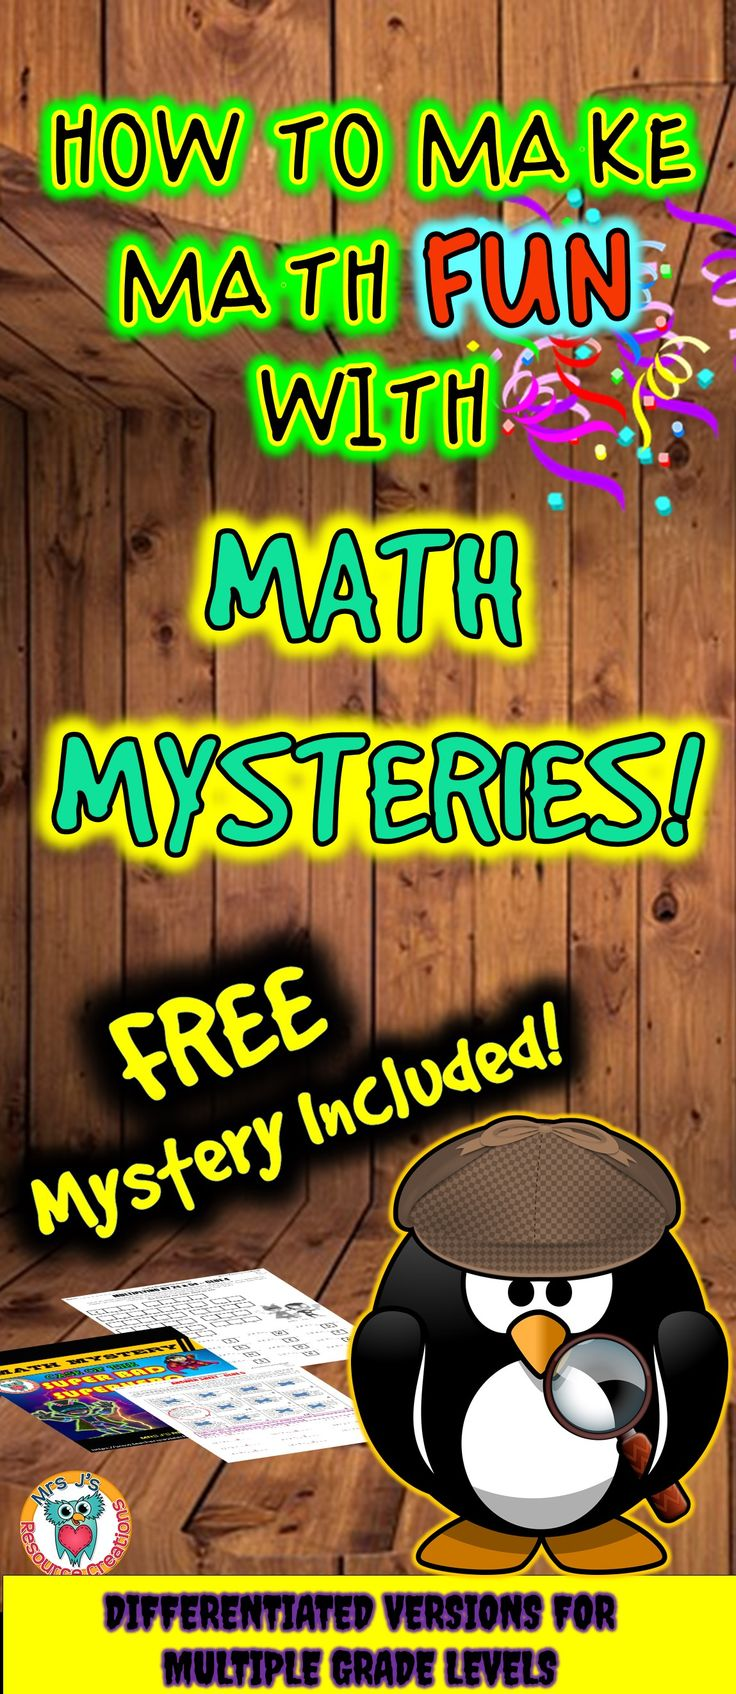 Make math fun with math mysteries! Blog post on how to use and differentiate with these fun activities. FREE Math Mystery included in versions for multiple grade levels!